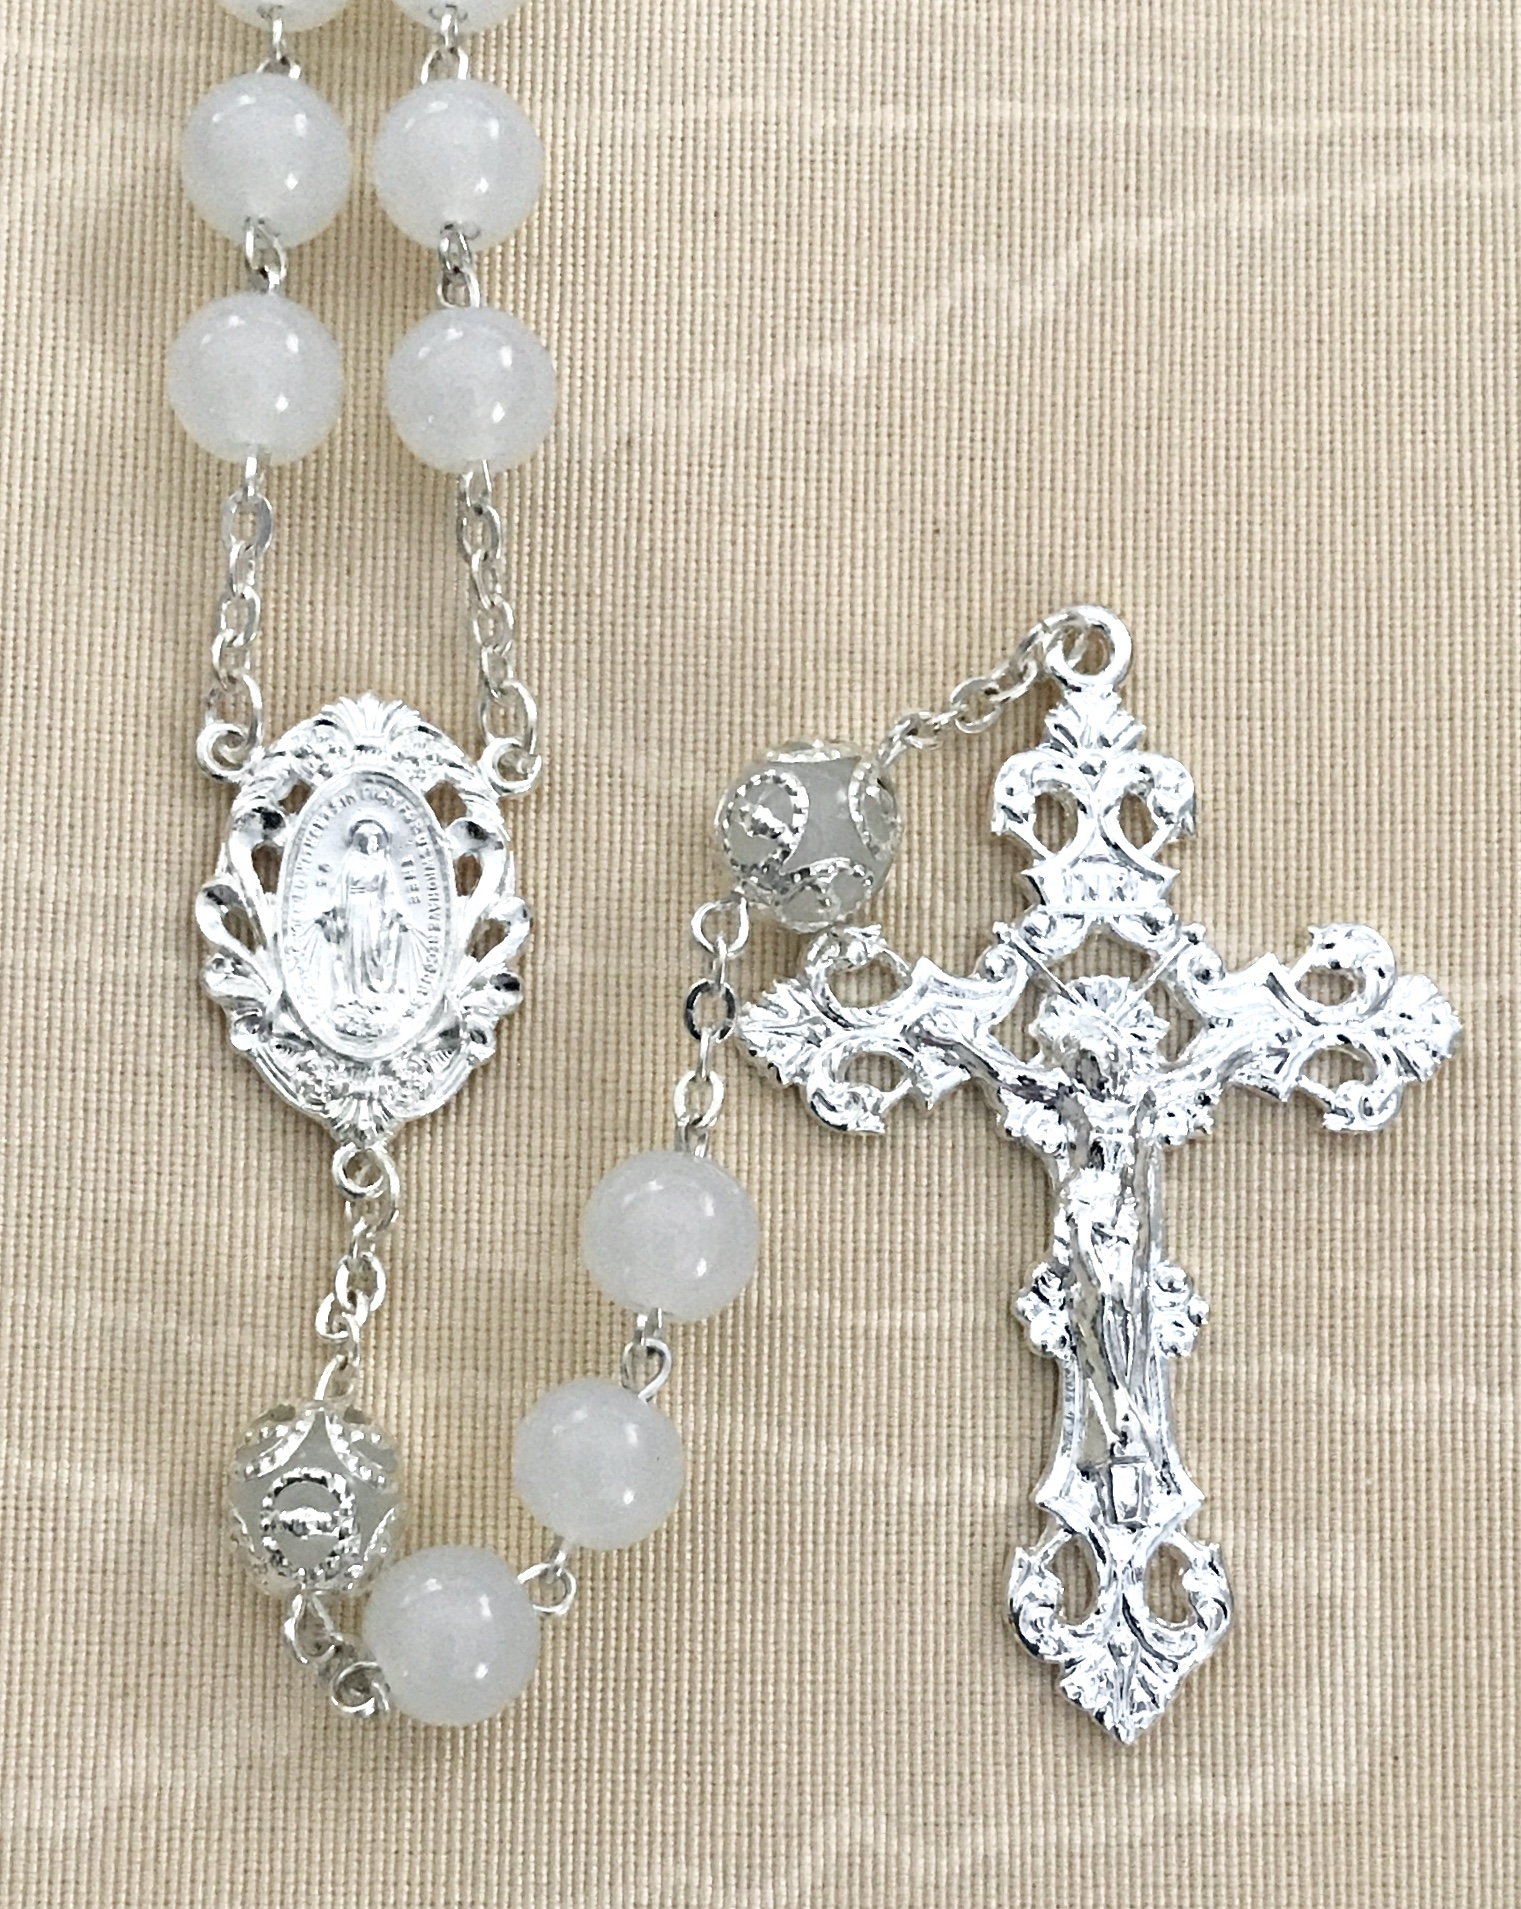 8mm WHITE GLASS ROSARY WITH CAPPED OUR FATHER BEADS AND STERLING SILVER PLATED CRUCIFIX AND CENTER GIFT BOXED